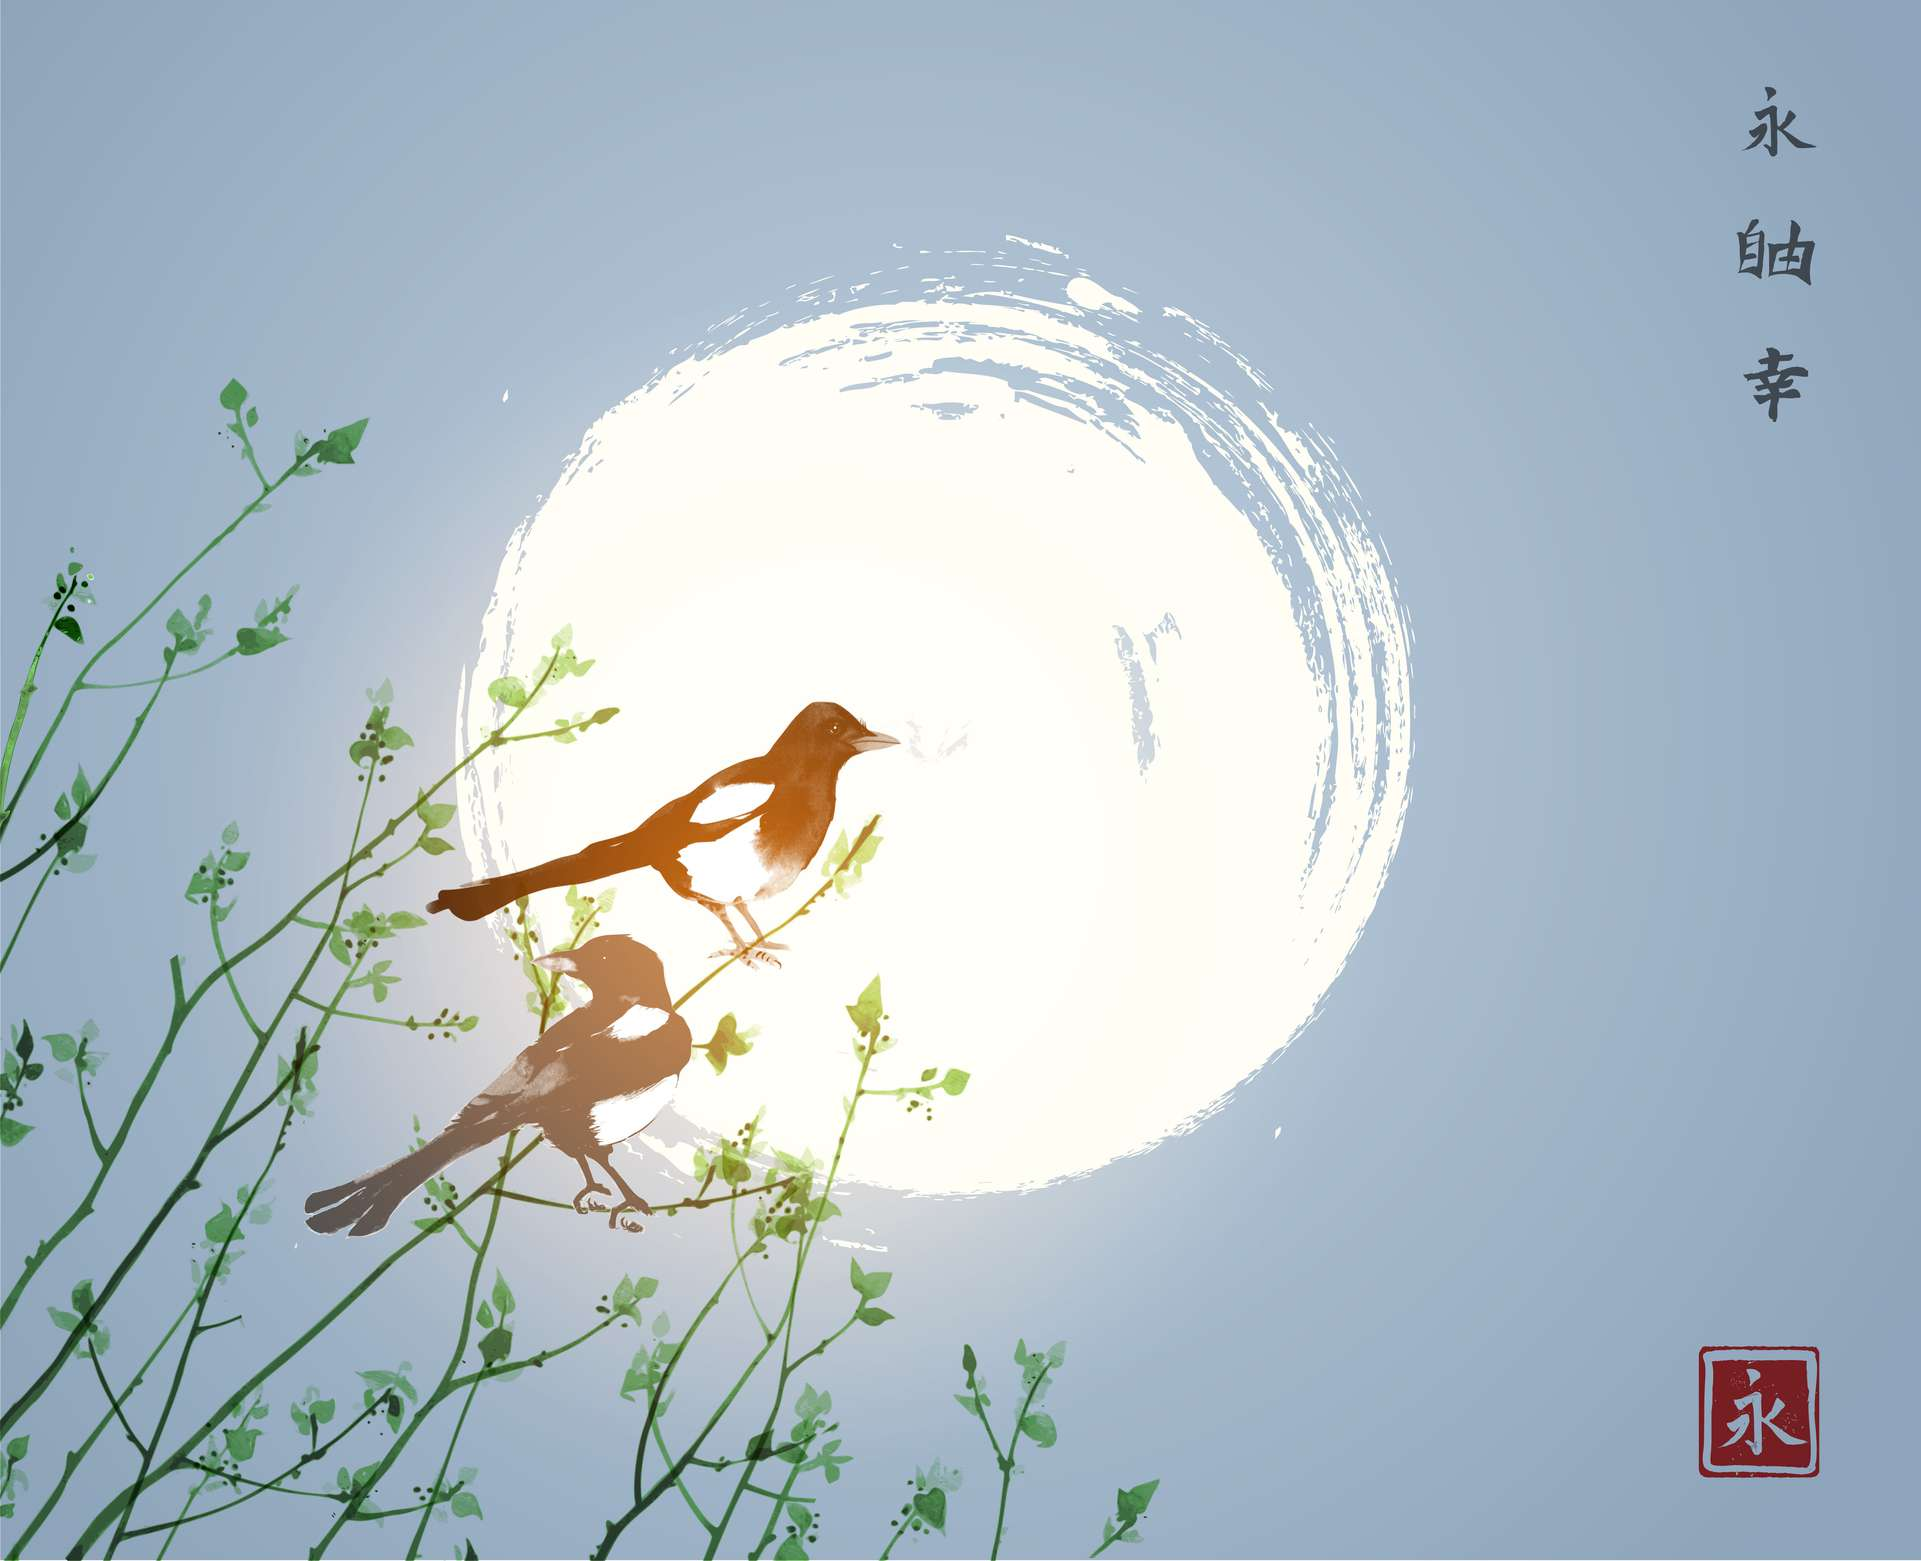 The moon and two magpie birds on bamboo trees. Traditional Japanese ink wash painting sumi-e on blue night sky background. Hieroglyphs - eternity, freedom, happiness